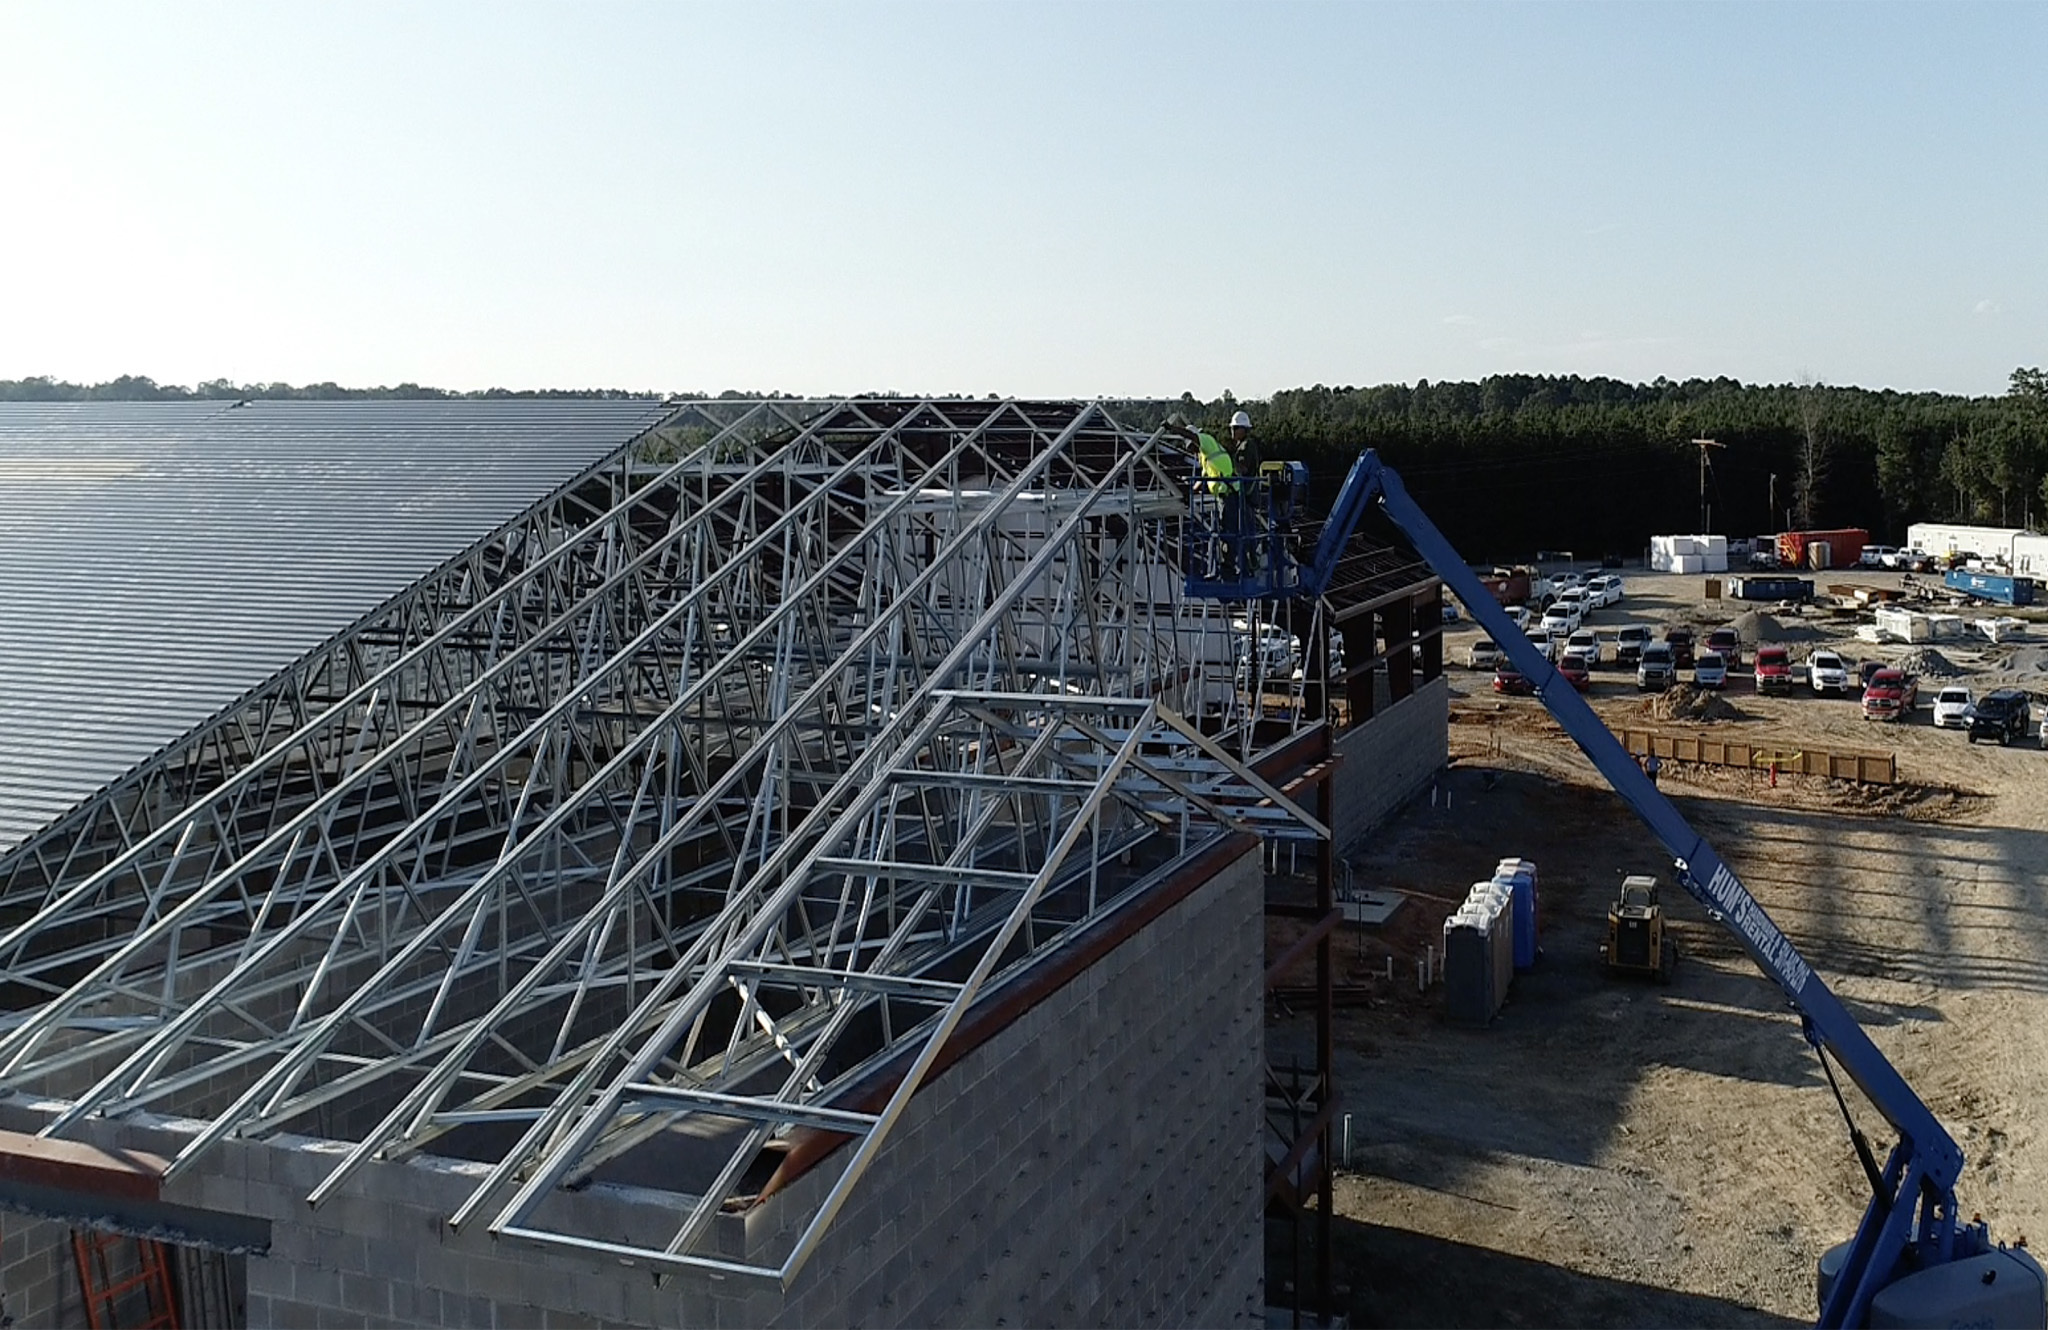 Image of the last truss being placed on top of the East End Middle School Building during construction